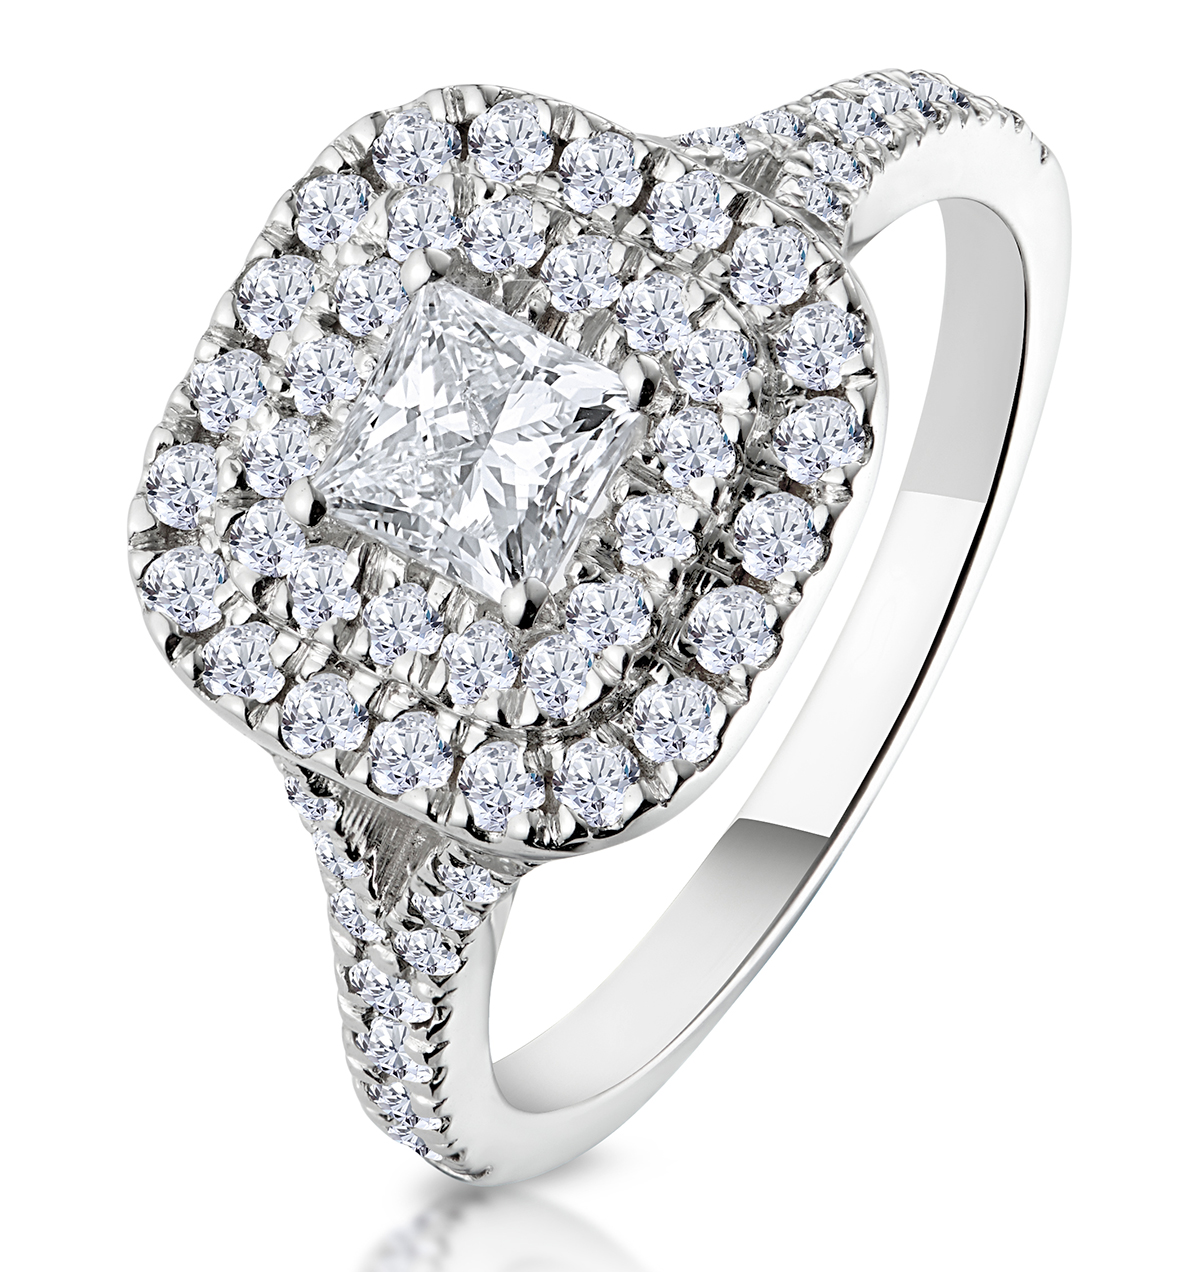 Cleopatra GIA Diamond Halo Engagement Ring in Platinum 1.20ct G/SI1 - image 1